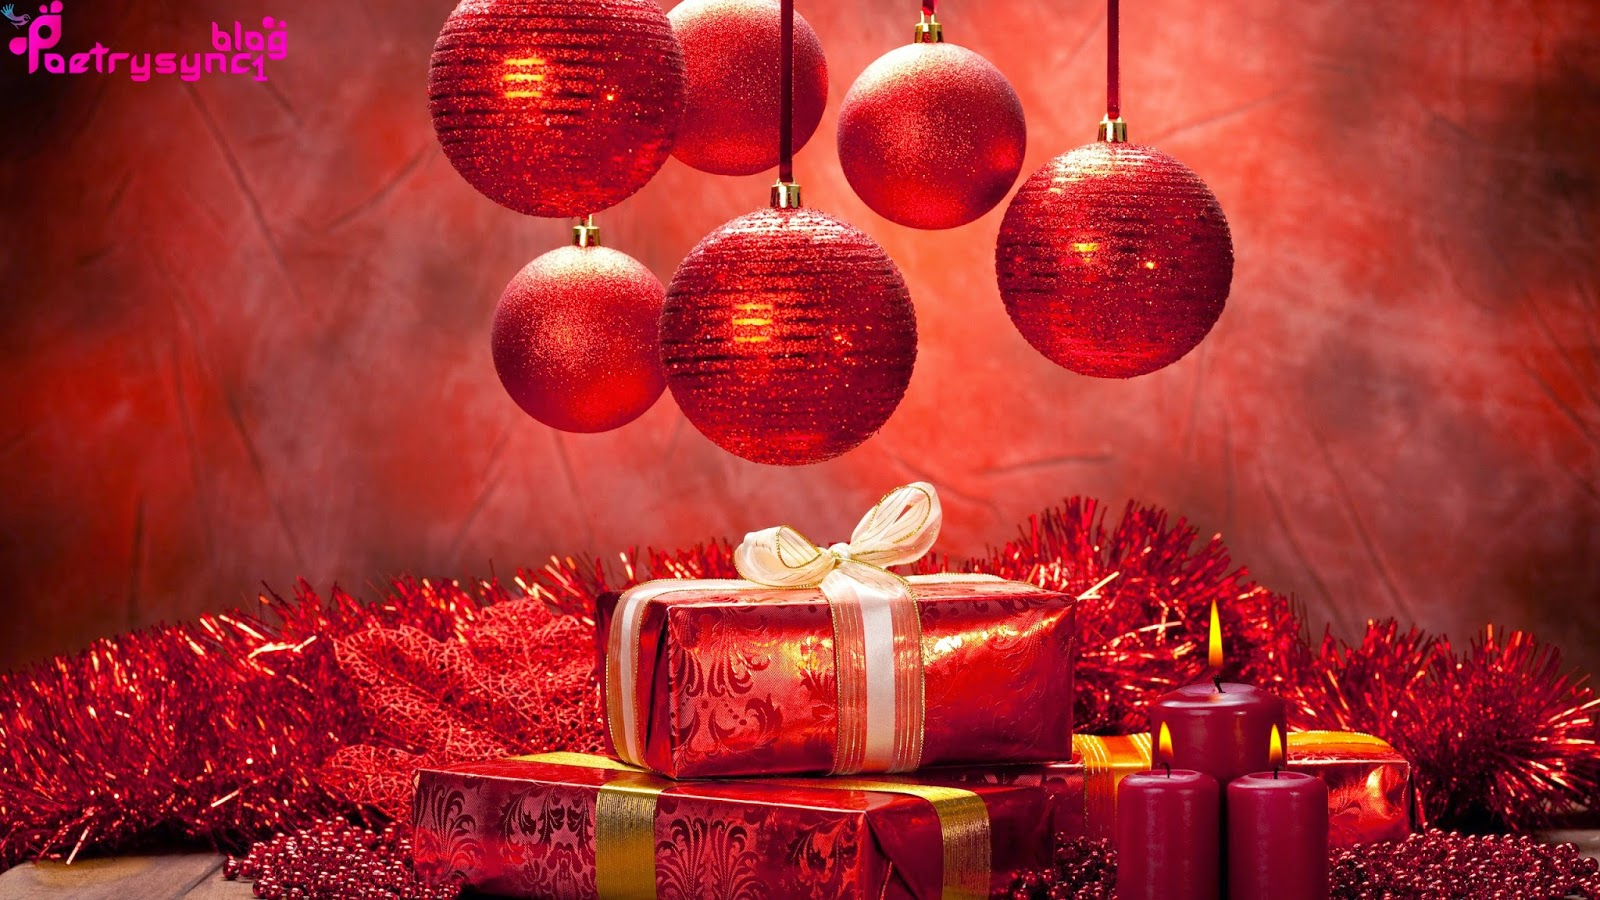 merry christmas wallpaper wishes balls  gifts  ribbon and